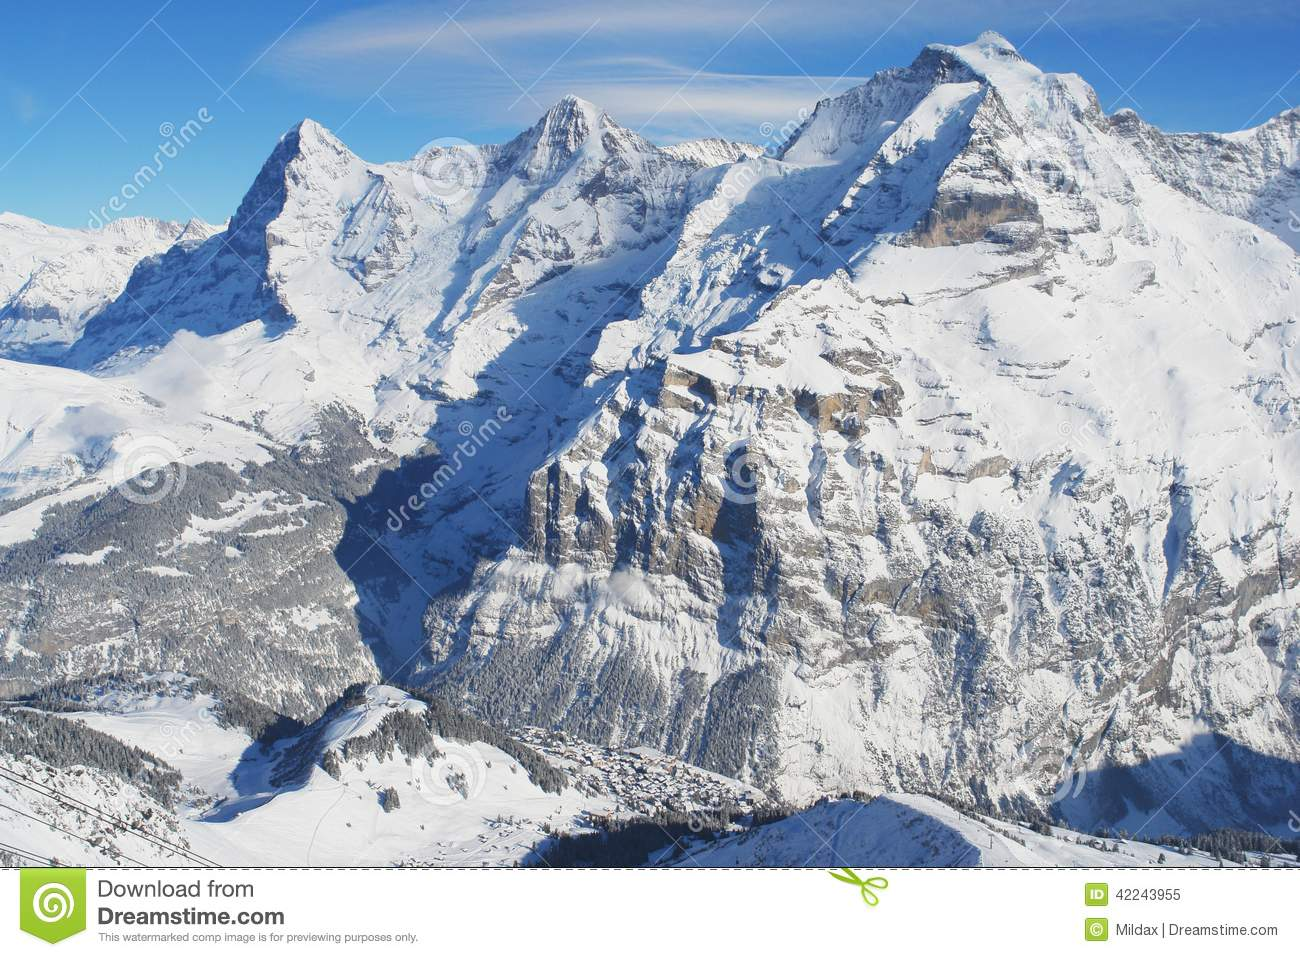 Schilthorn Mountain clipart #5, Download drawings